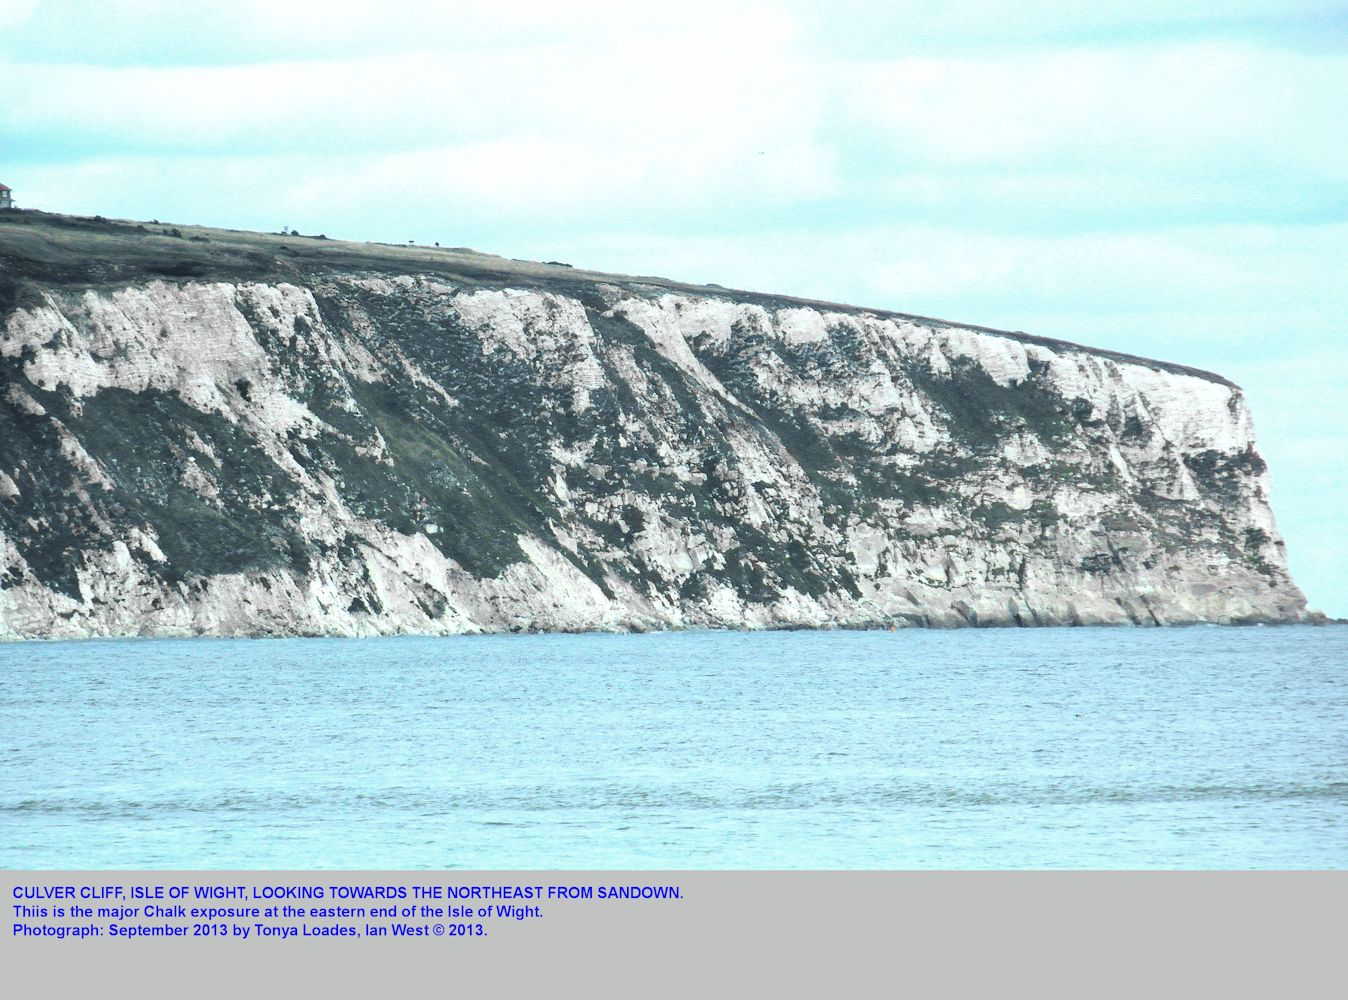 Culver Cliff of Chalk, as seen looking northeast from Sandown, Isle of Wight, September 2013